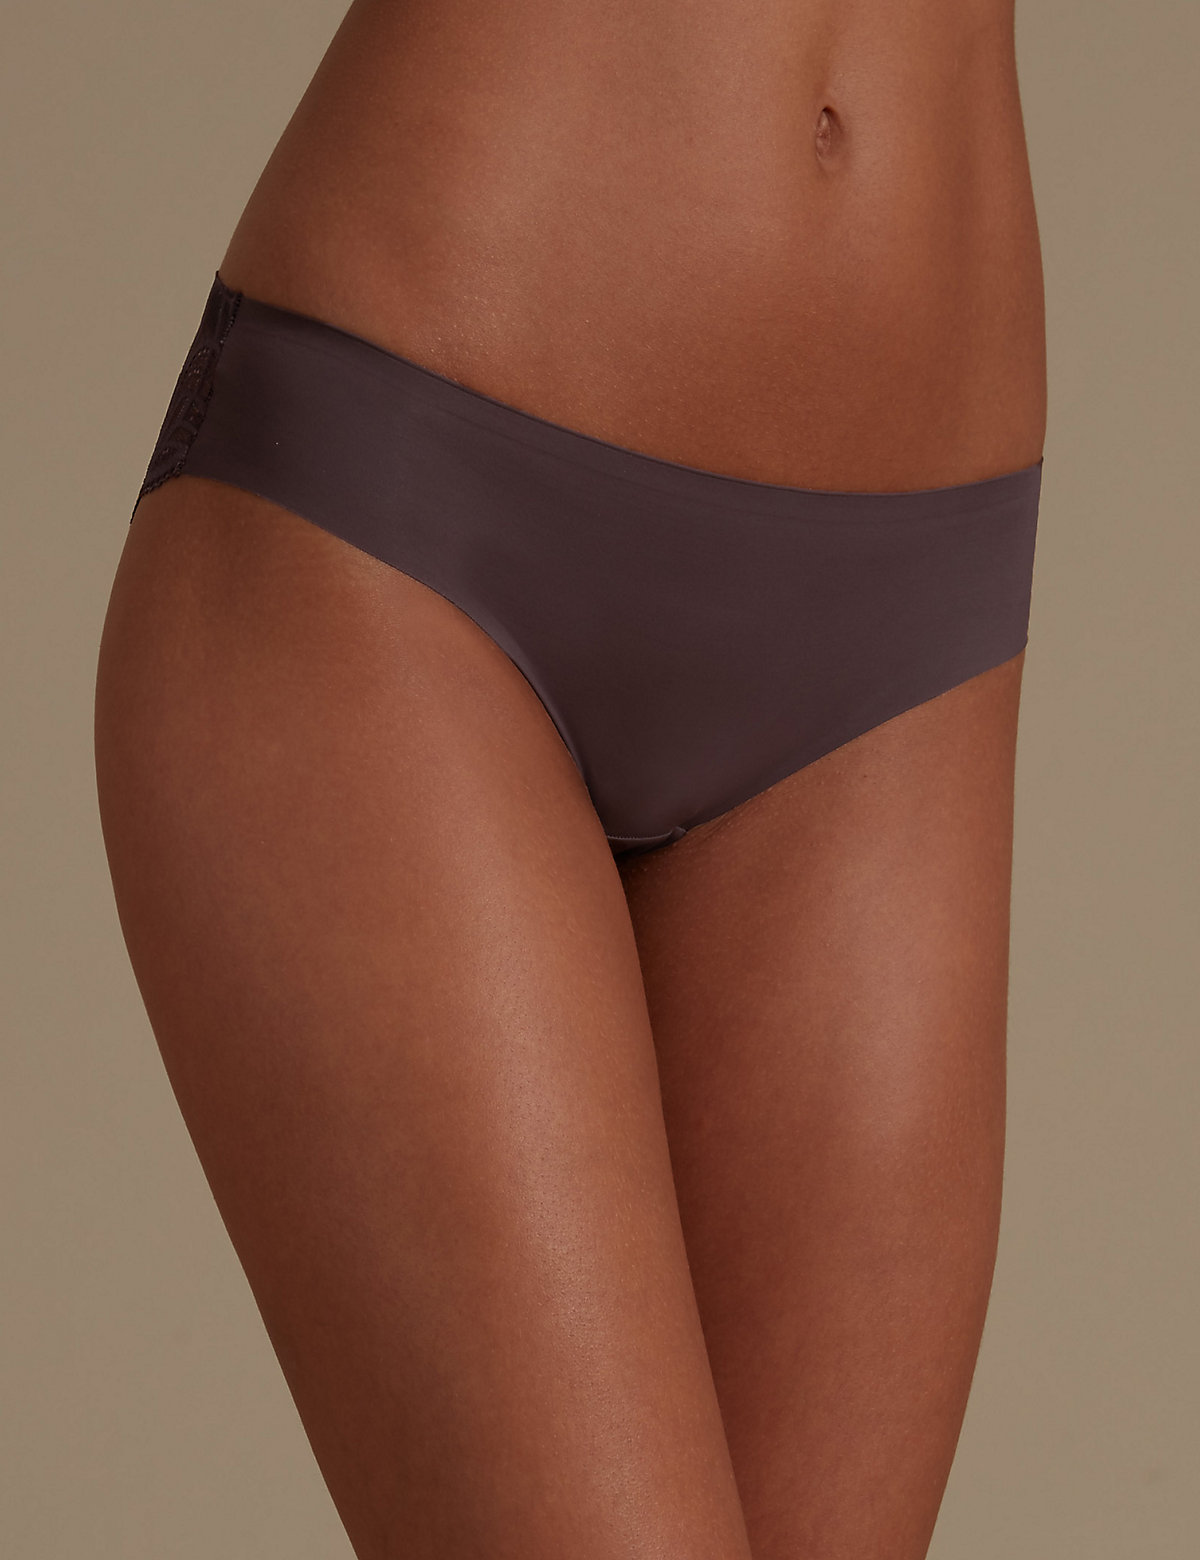 M&s Collection Smooth Lines Brazilian Knickers